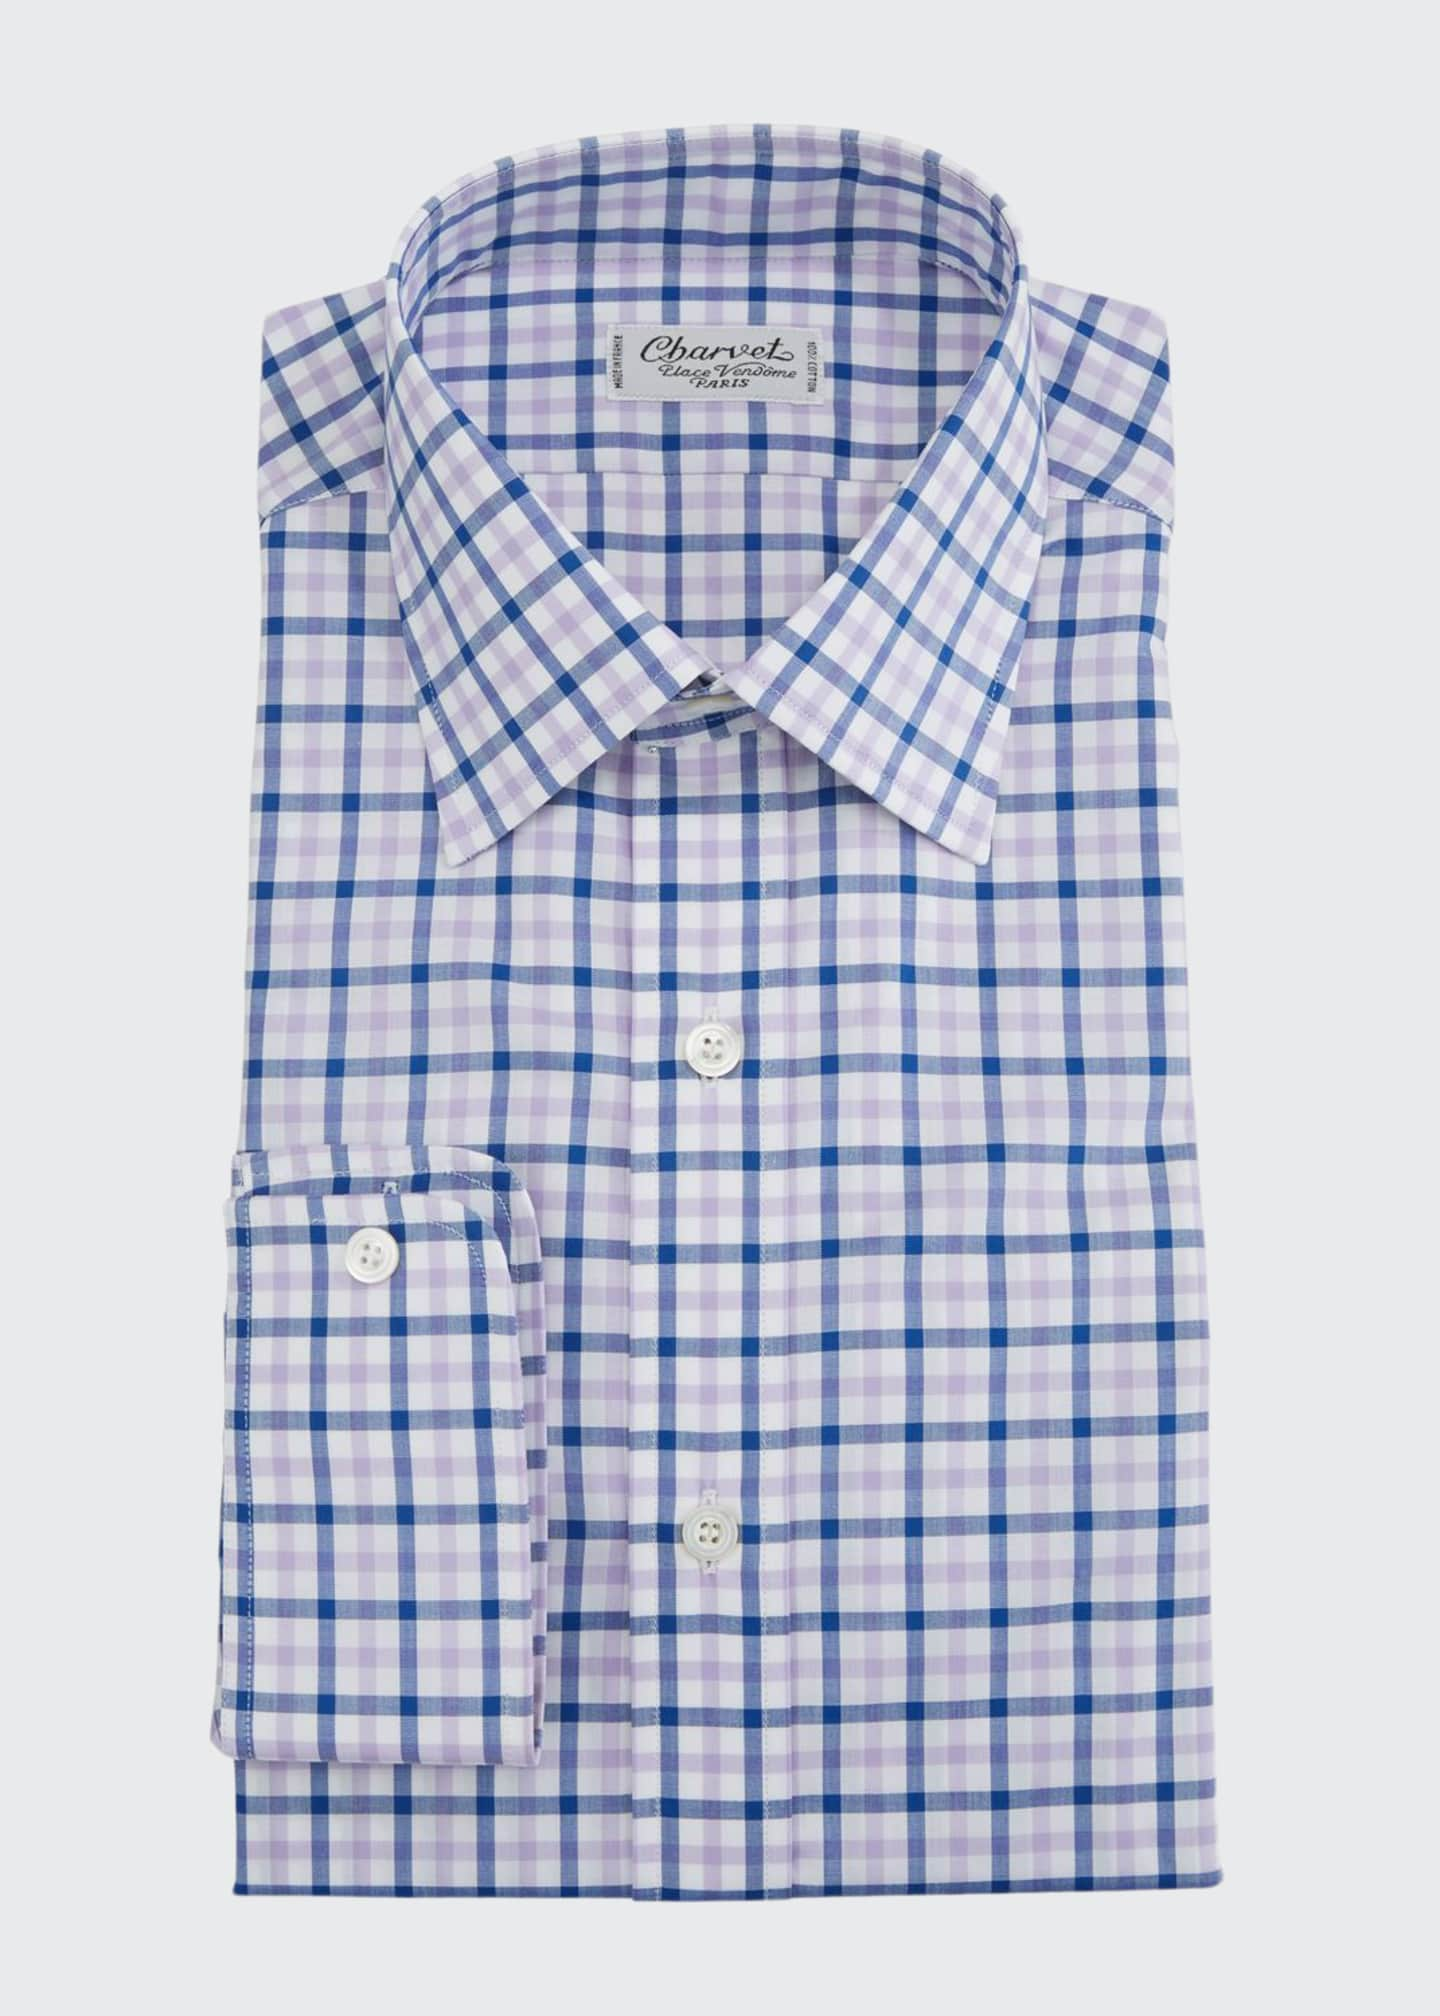 Charvet Men's Two-Tone Plaid Dress Shirt, Pink/Purple